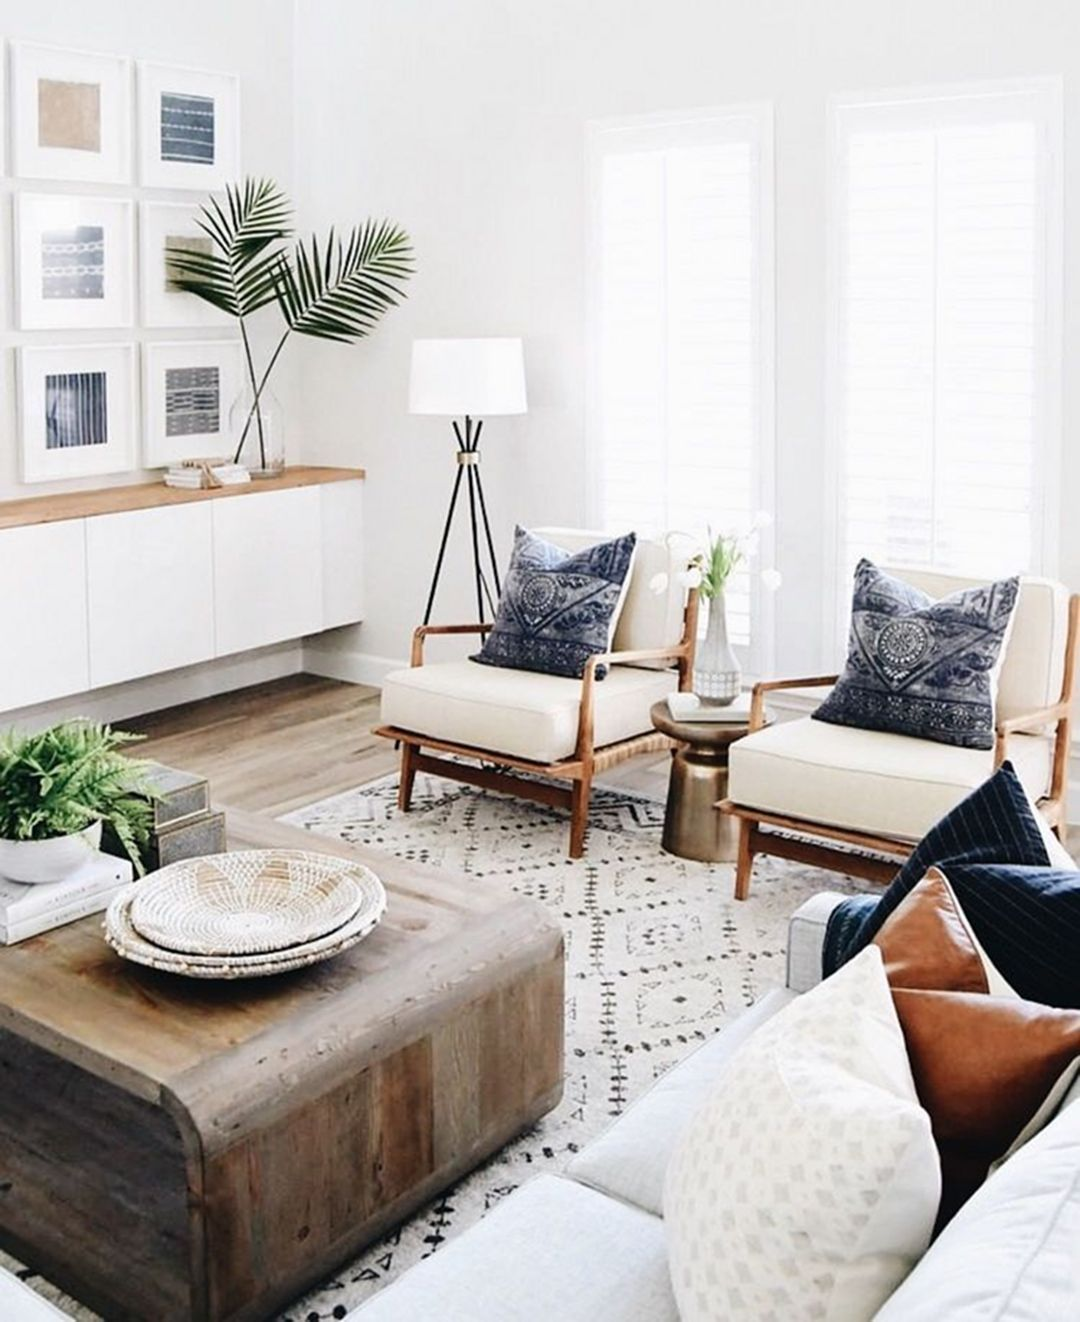 17 Most Popular Small Modern Living Room Design Ideas To Look